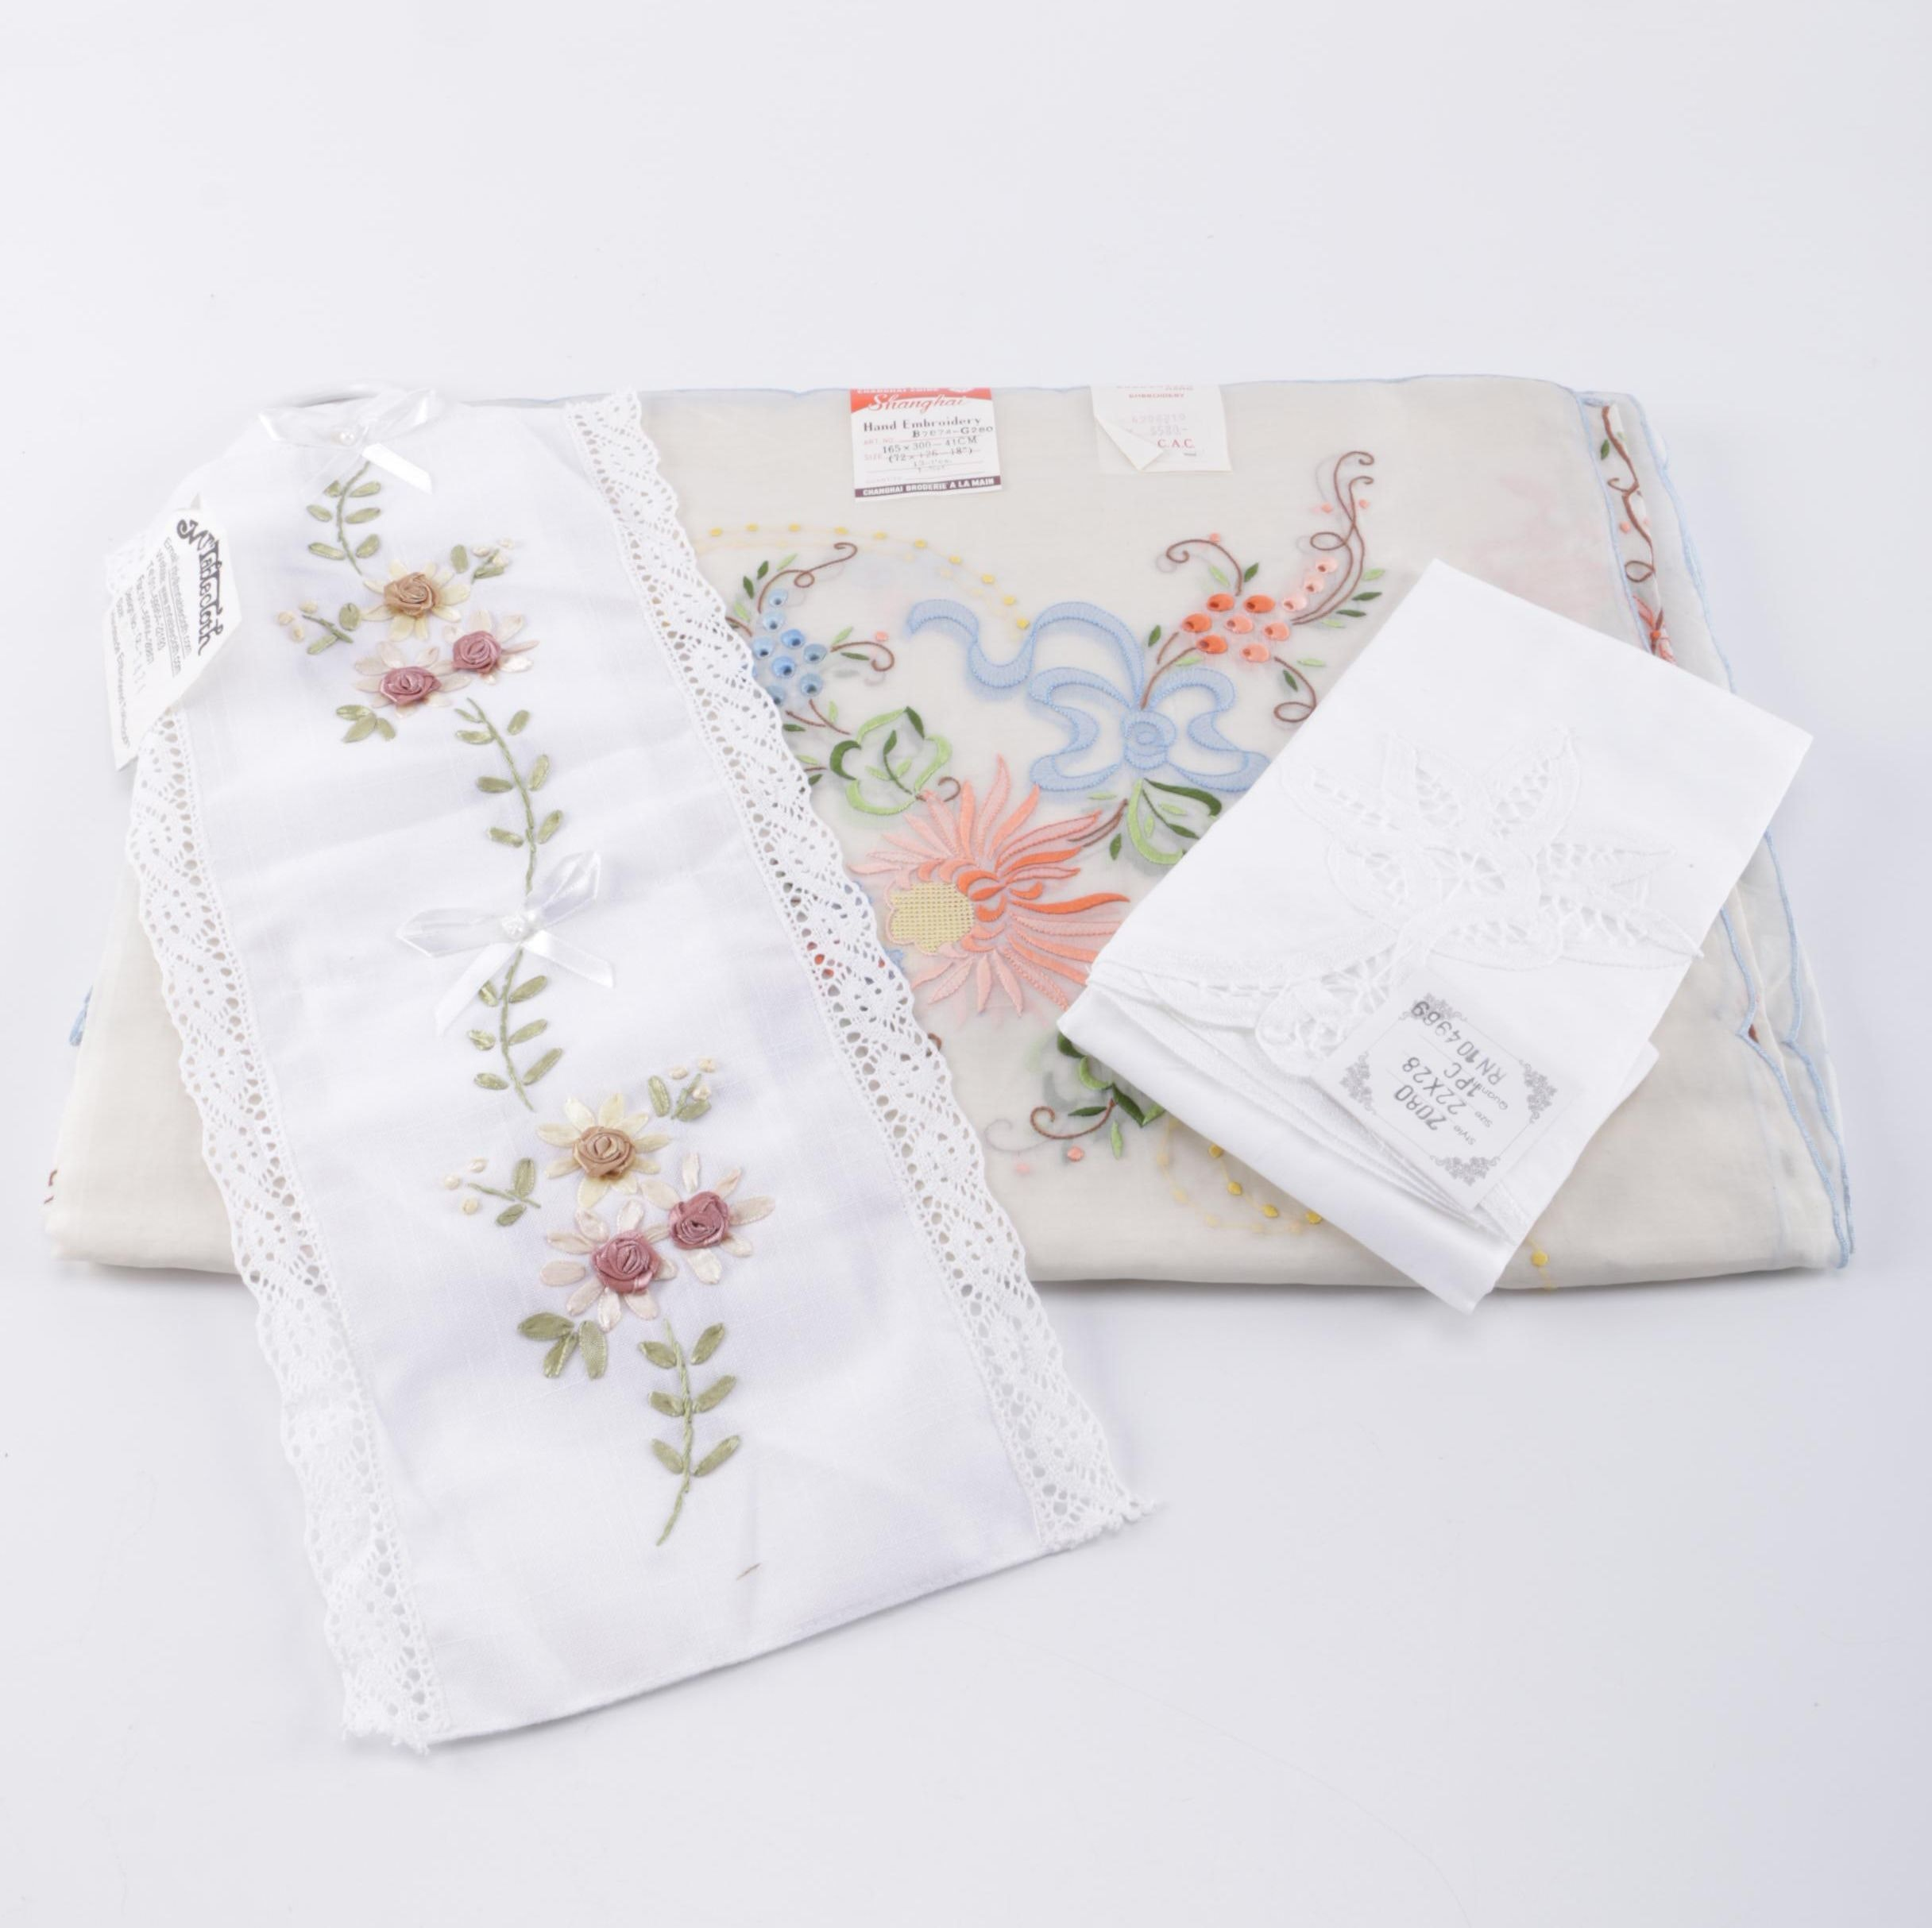 Vintage Linens With Embroidery and Lace